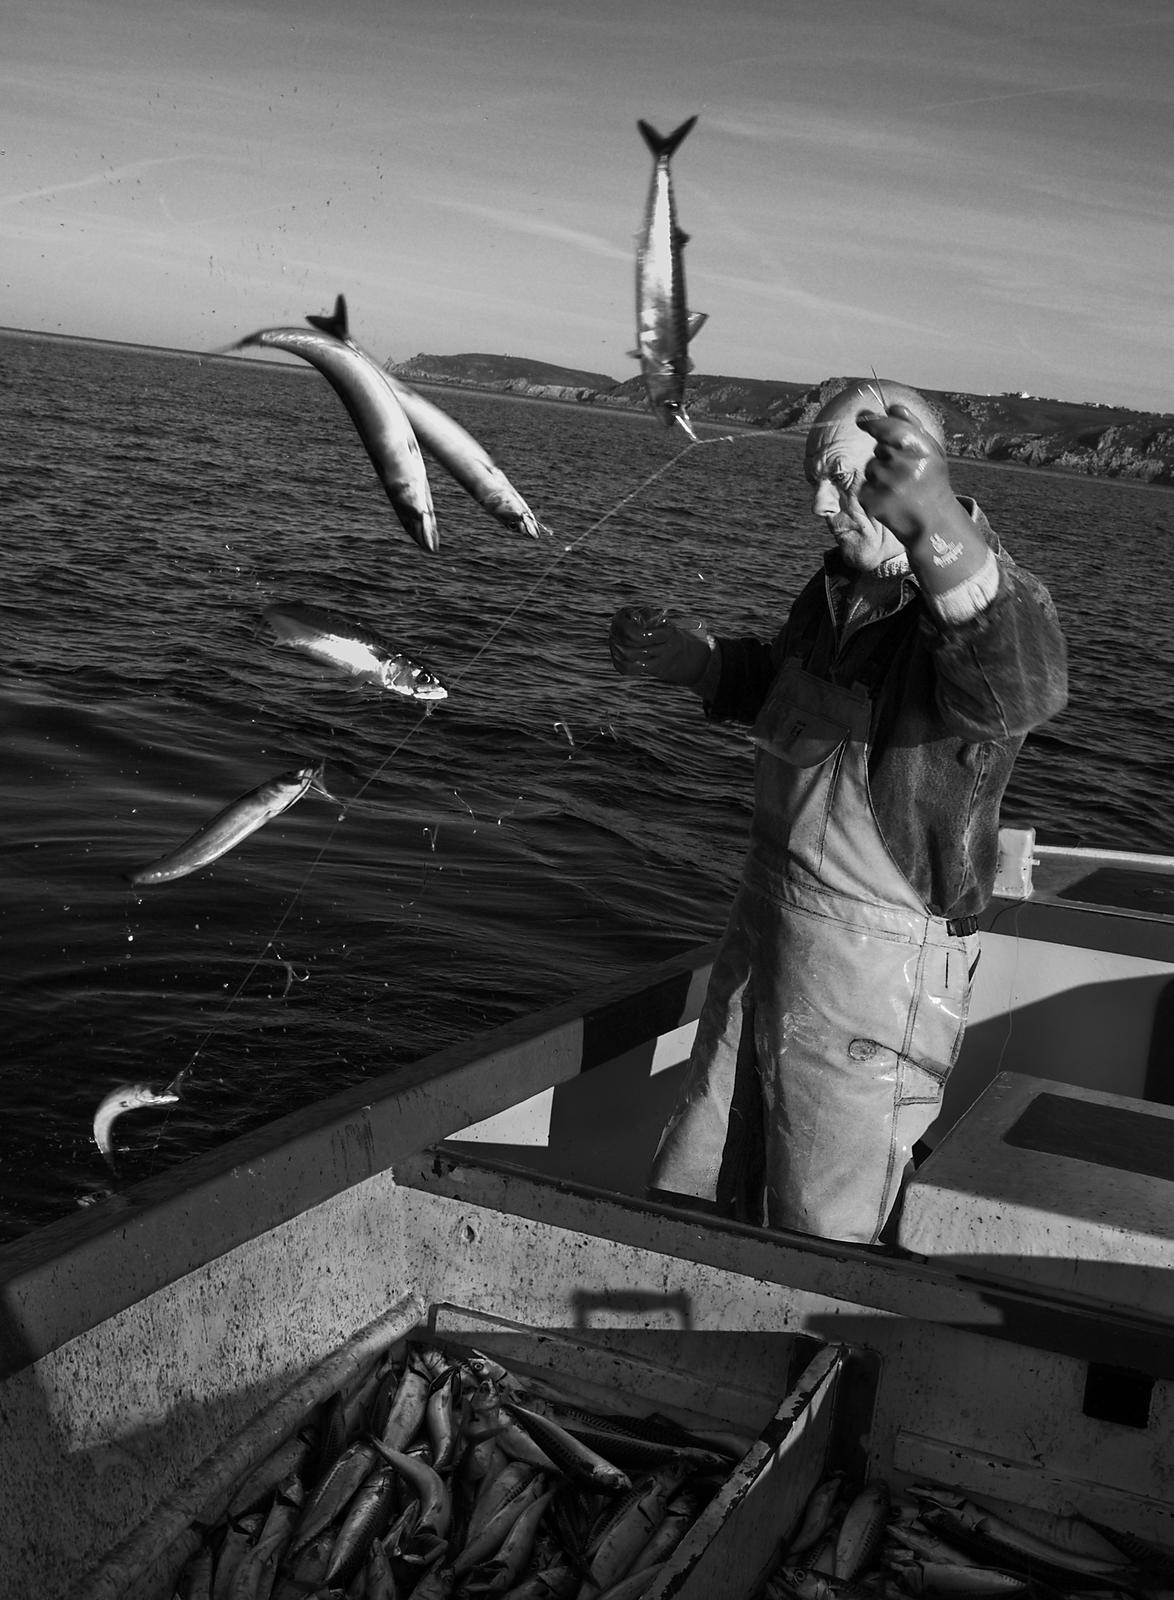 Joey Jeffery, handline fisherman, hauling in mackerel, working out of Newlyn, Cornwall, England.